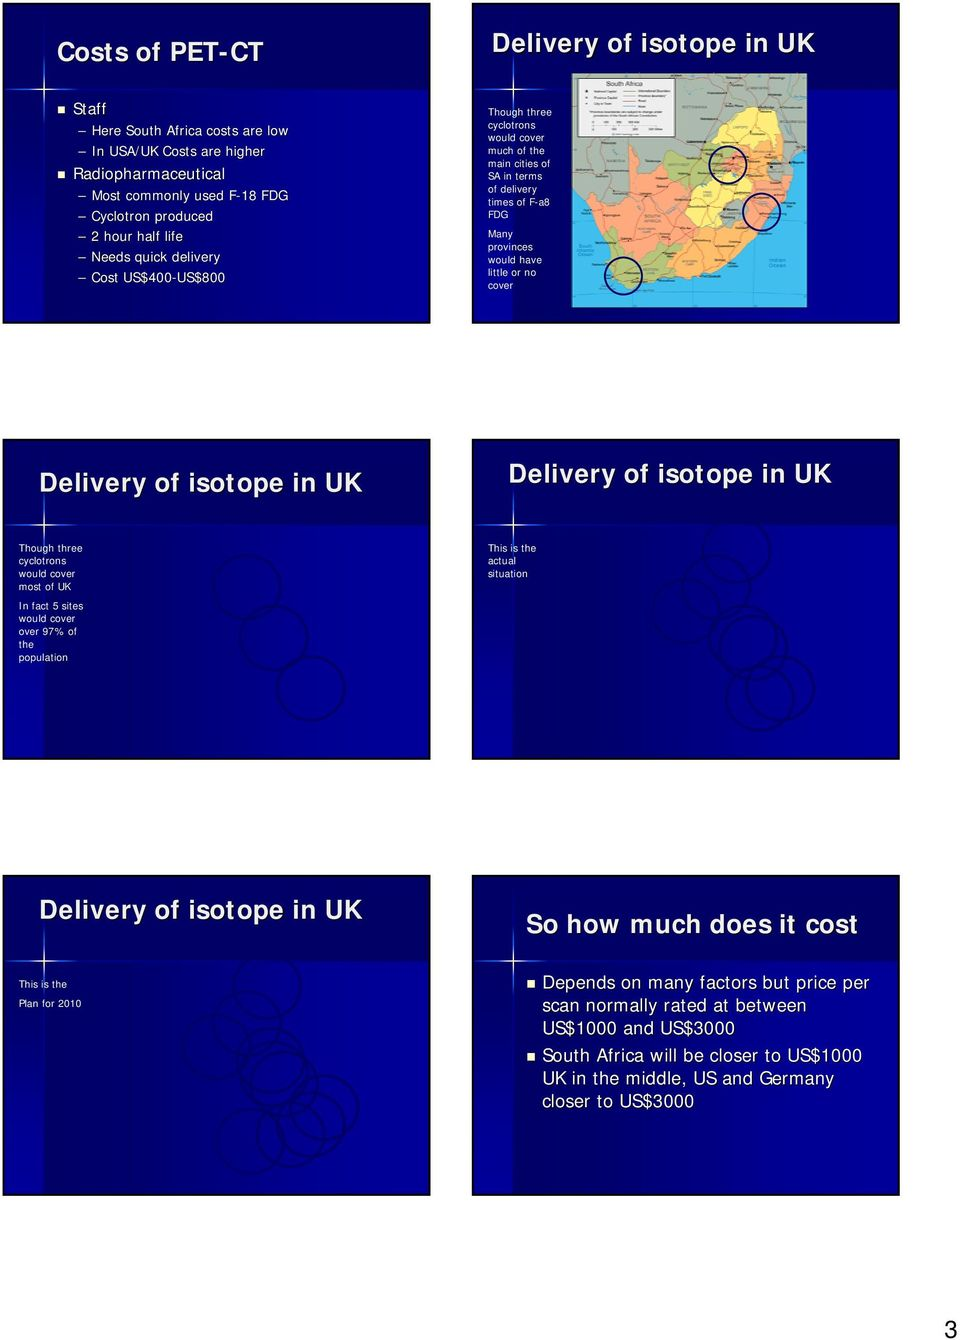 of isotope in UK Delivery of isotope in UK Though three cyclotrons would cover most of UK In fact 5 sites would cover over 97% of the population This is the actual situation Delivery of isotope in UK